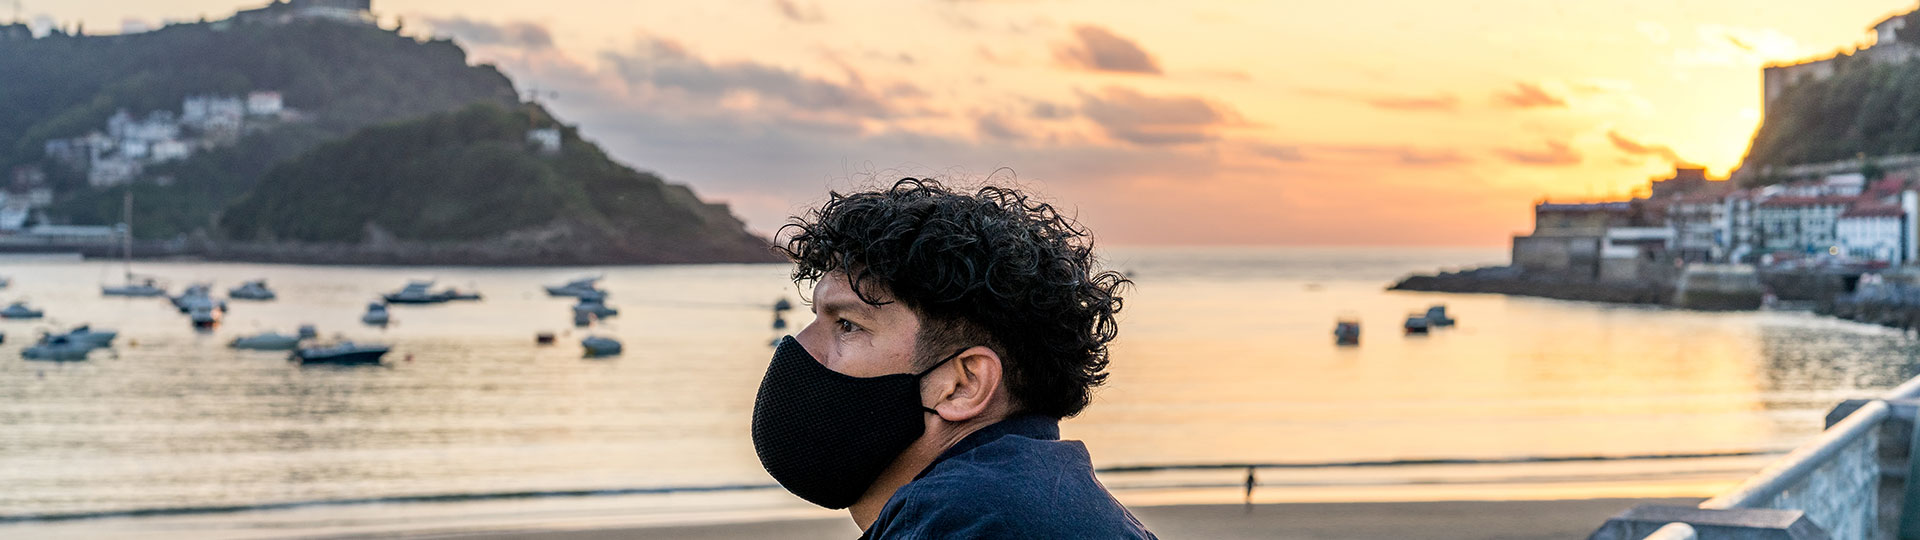 Boy with mask looking at the sunset on La Concha beach, San Sebastian